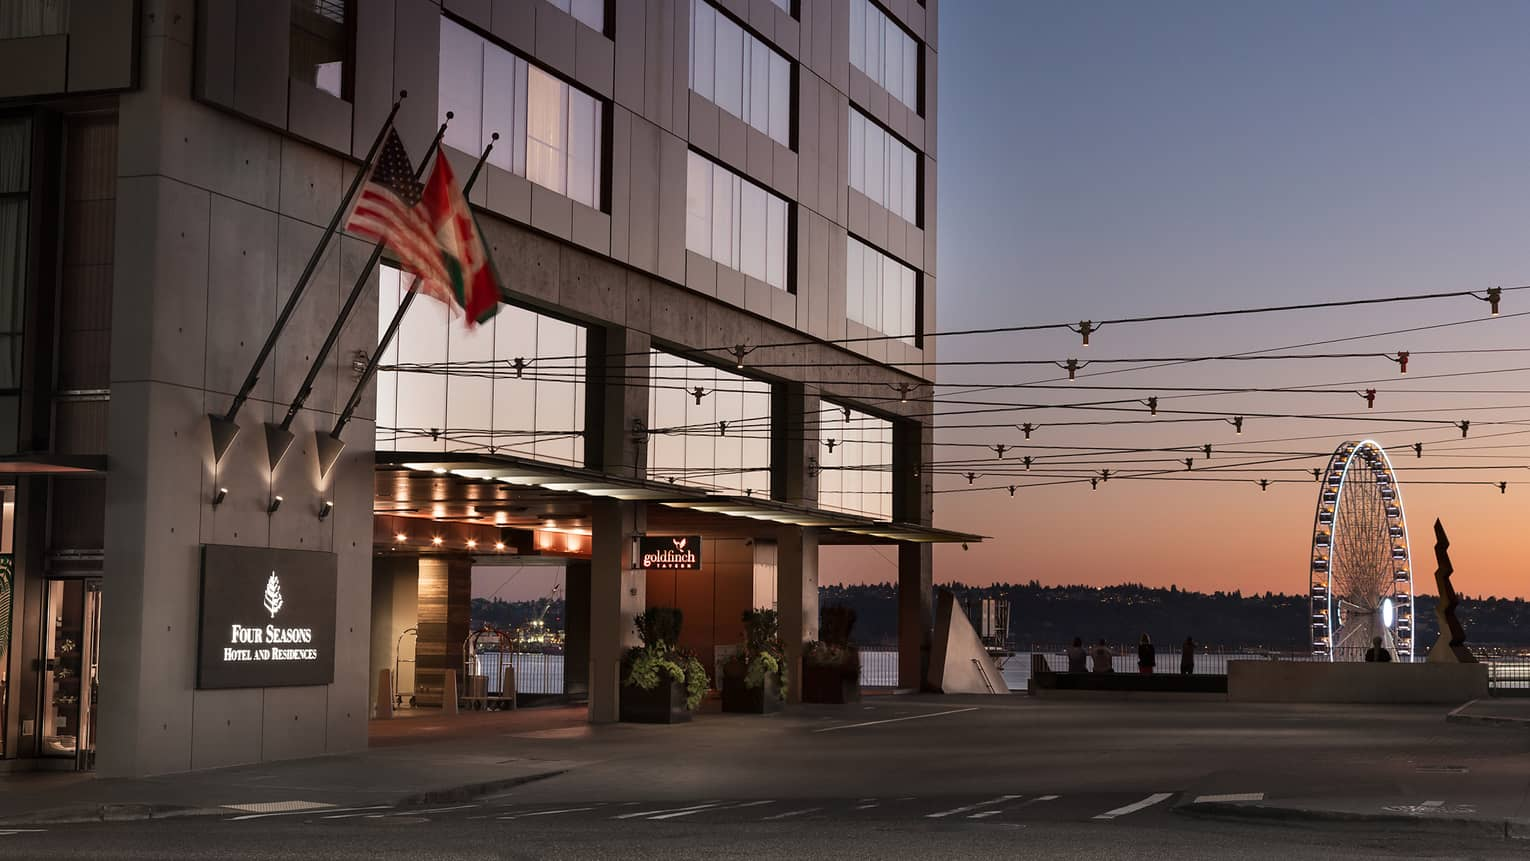 Four Seasons hotel exterior, front entrance with the Seattle Great Wheel in background at sunset